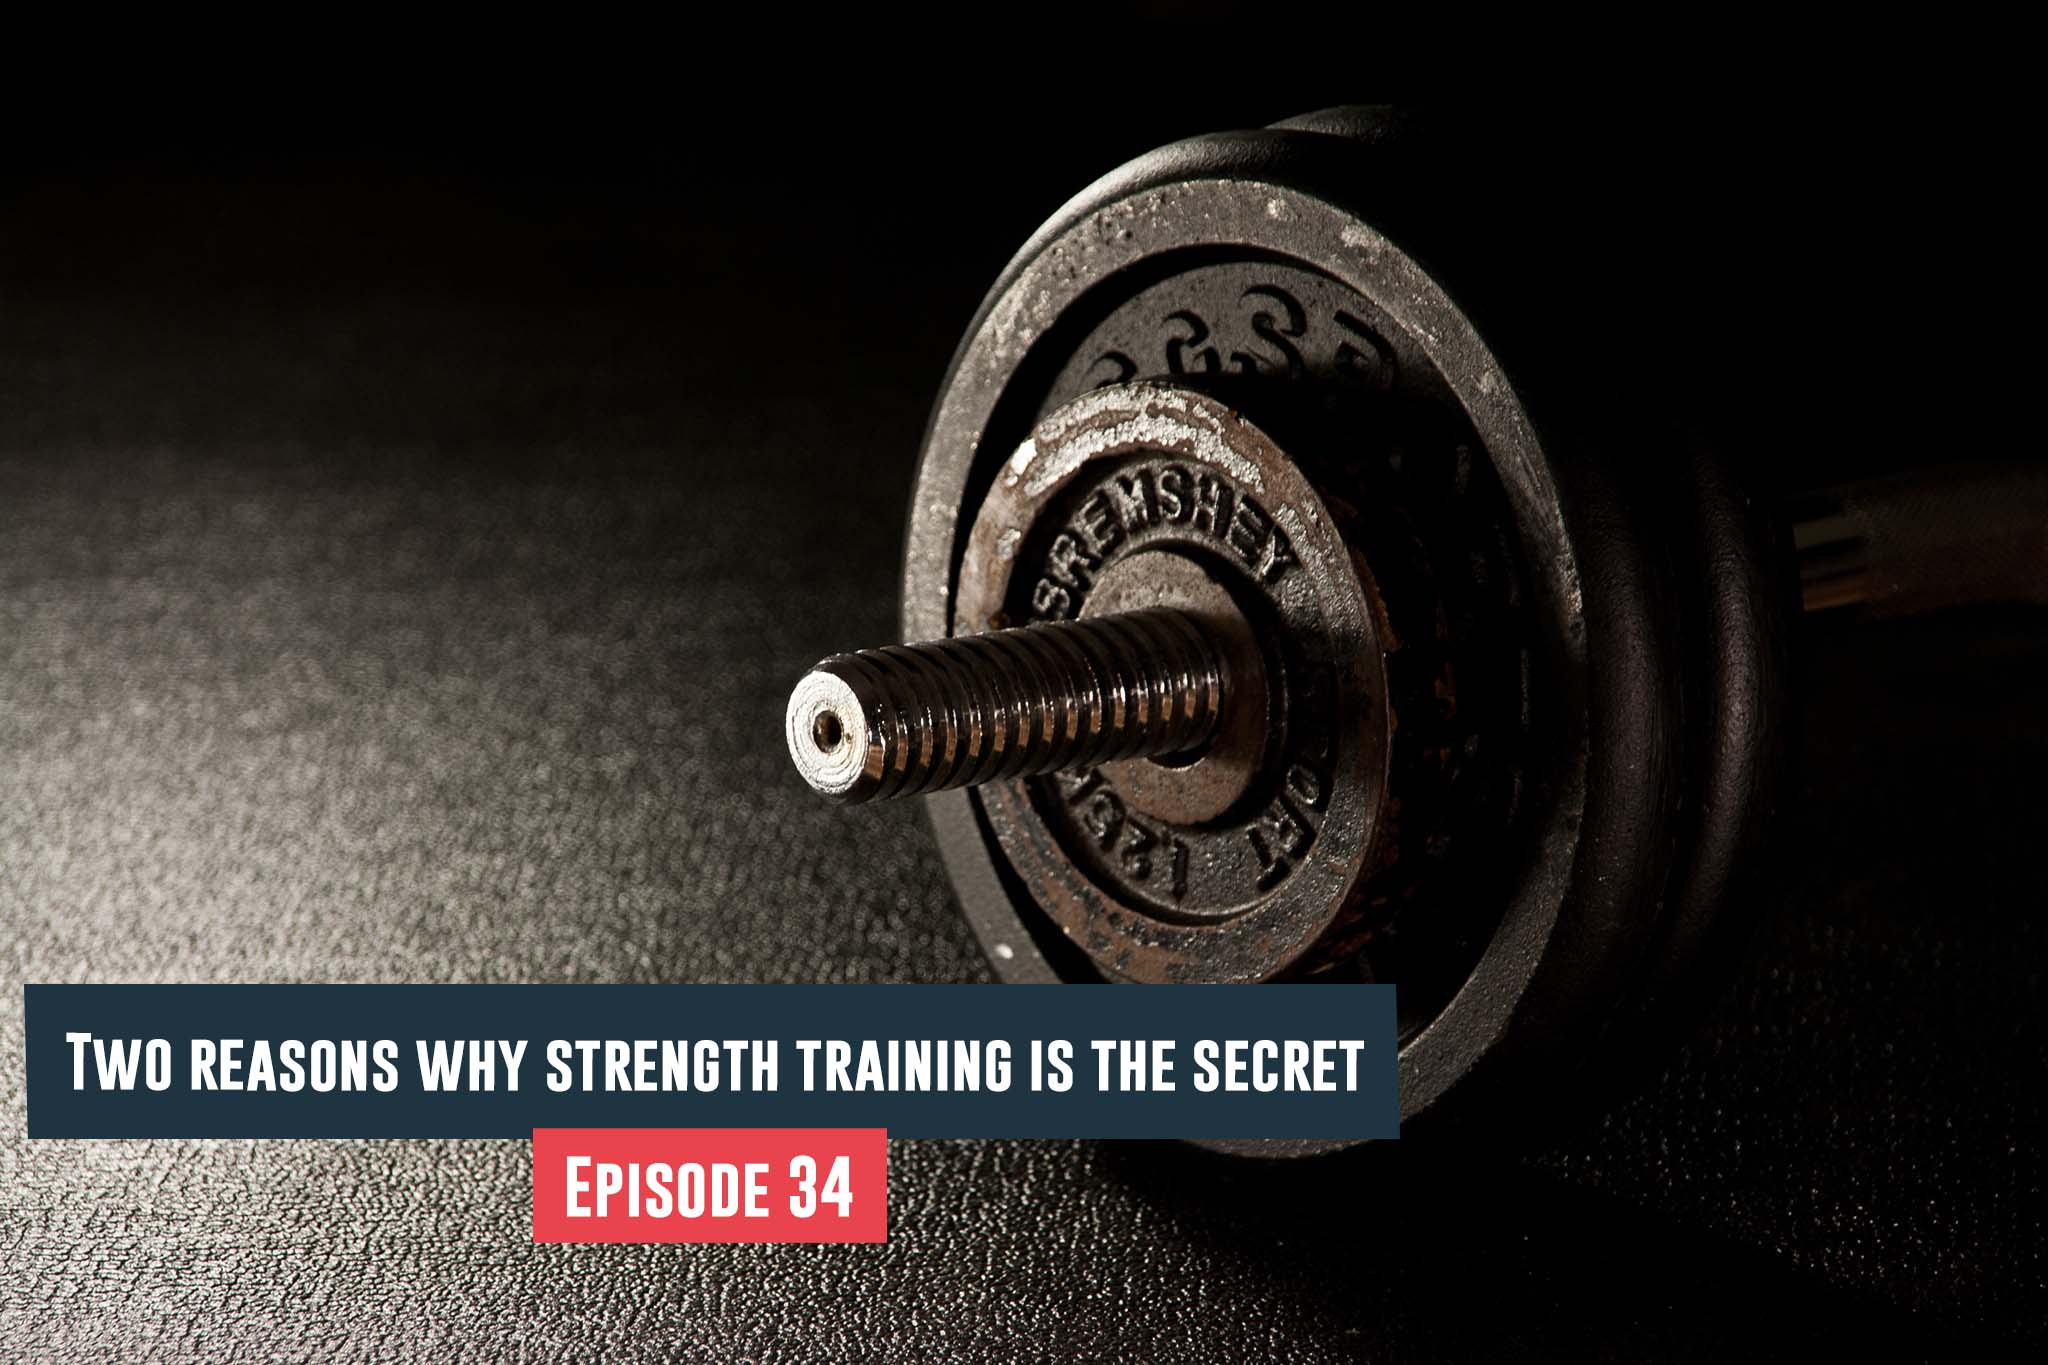 strength training is the secret